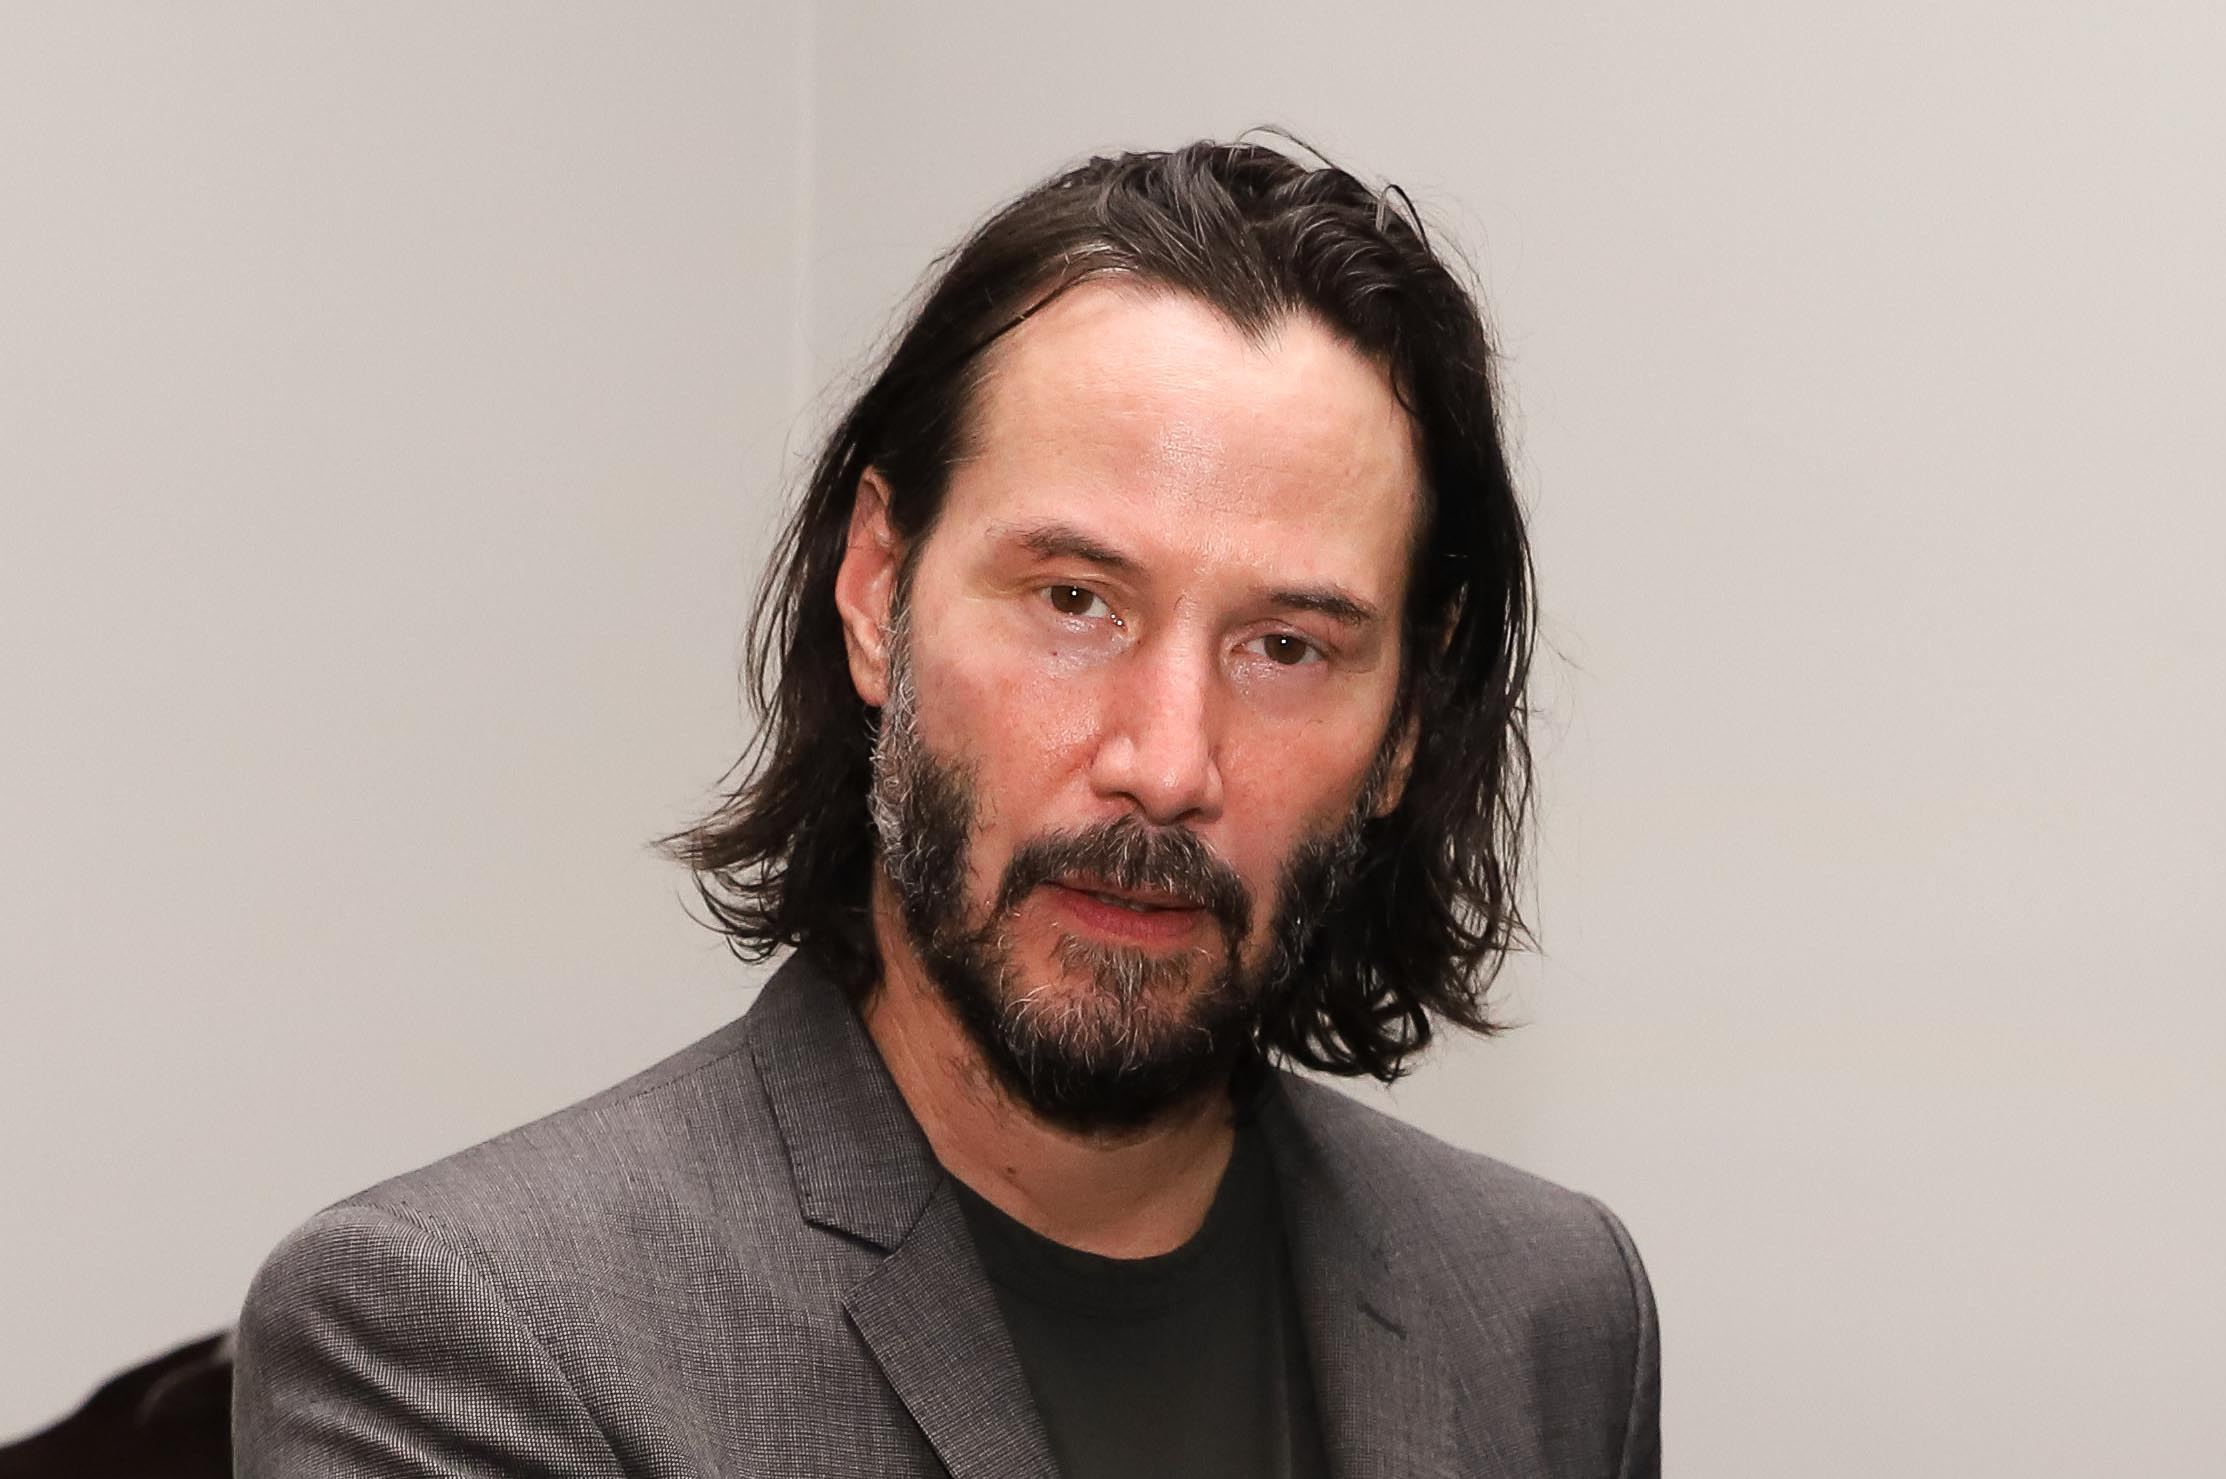 Keanu Reeves and his signature bro flow hair.